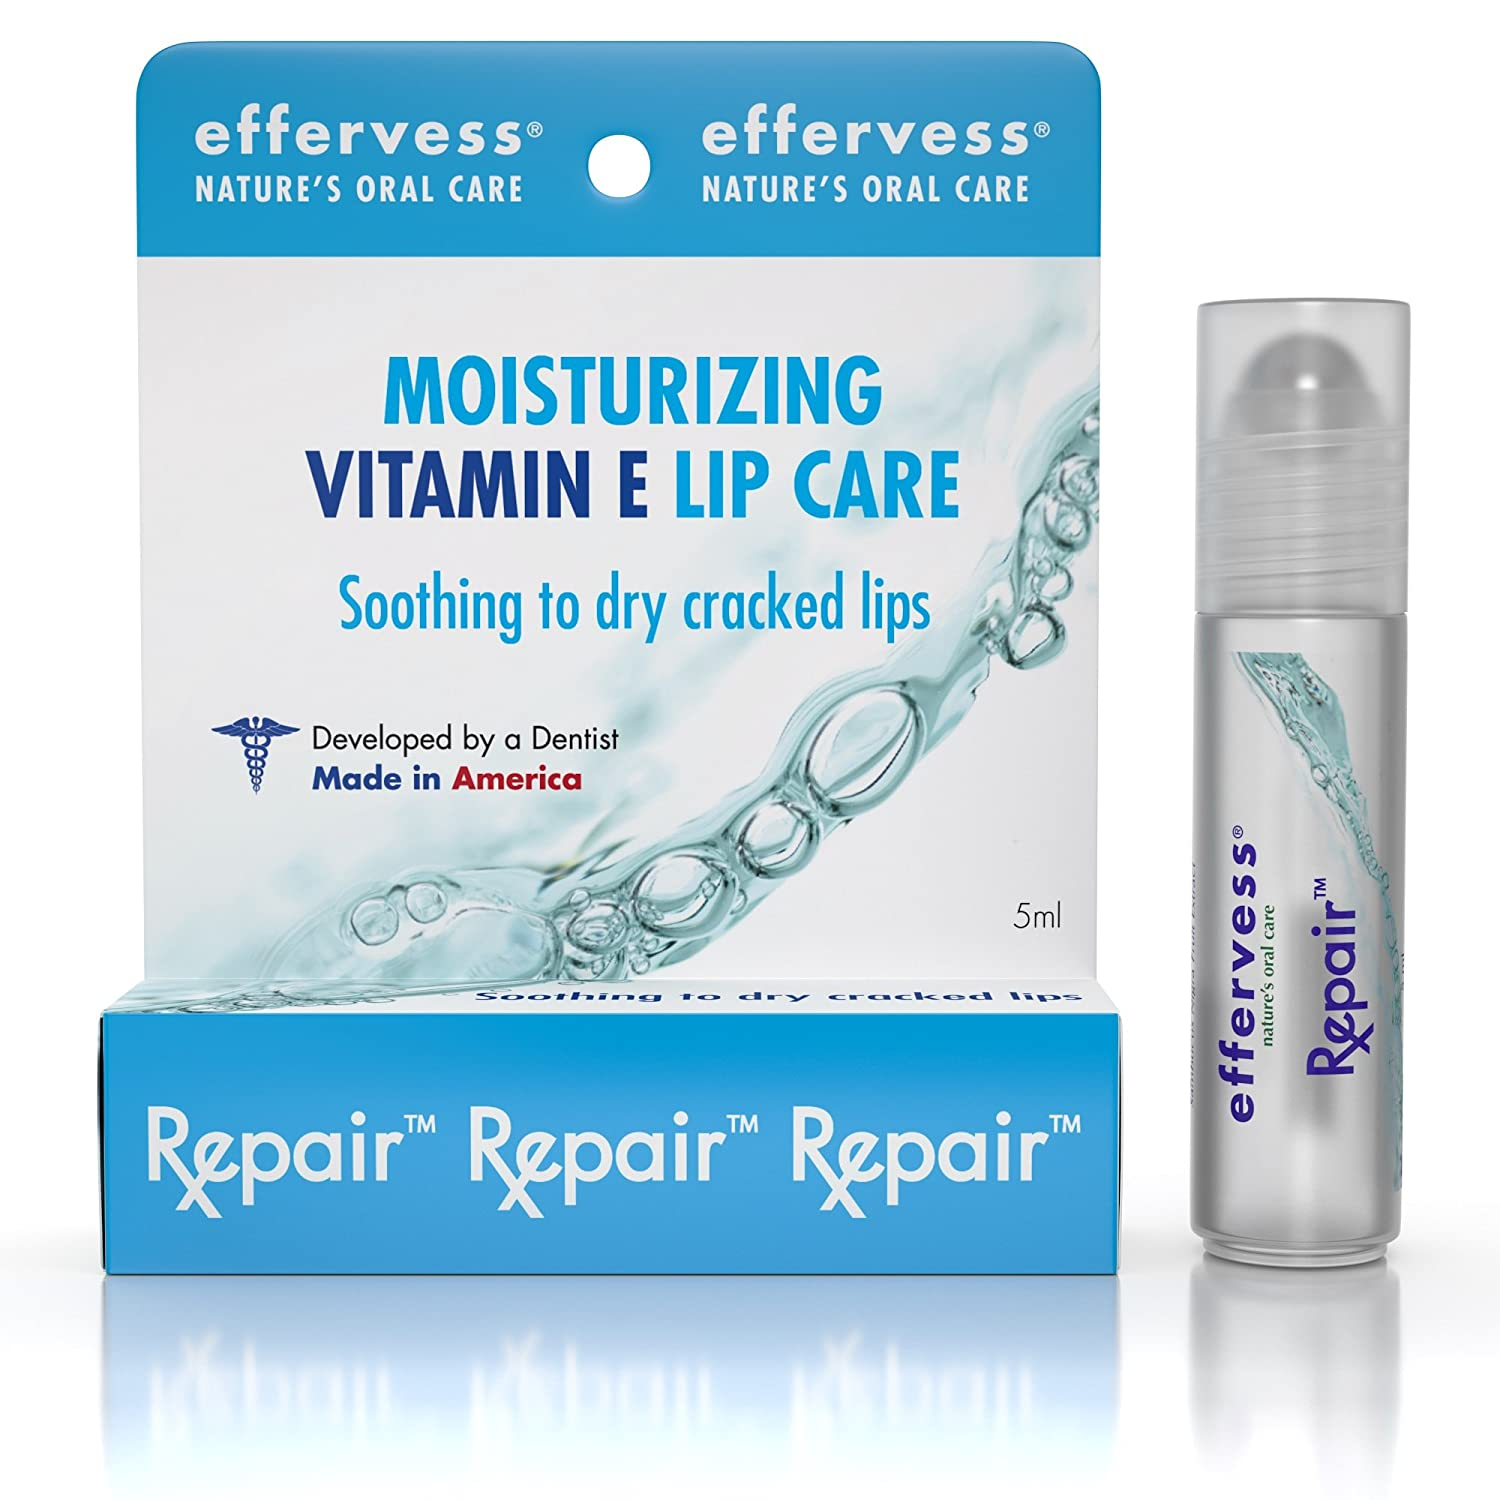 #1 Best Vitamin E Lip Balm - Lip Moisturizer - Beautiful Rollerball Application - Soothes & Hydrates Dry Cracked Lips - Helps Repair & Heal Damaged Skin - Made in the USA - Satisfaction Guaranteed Effervess